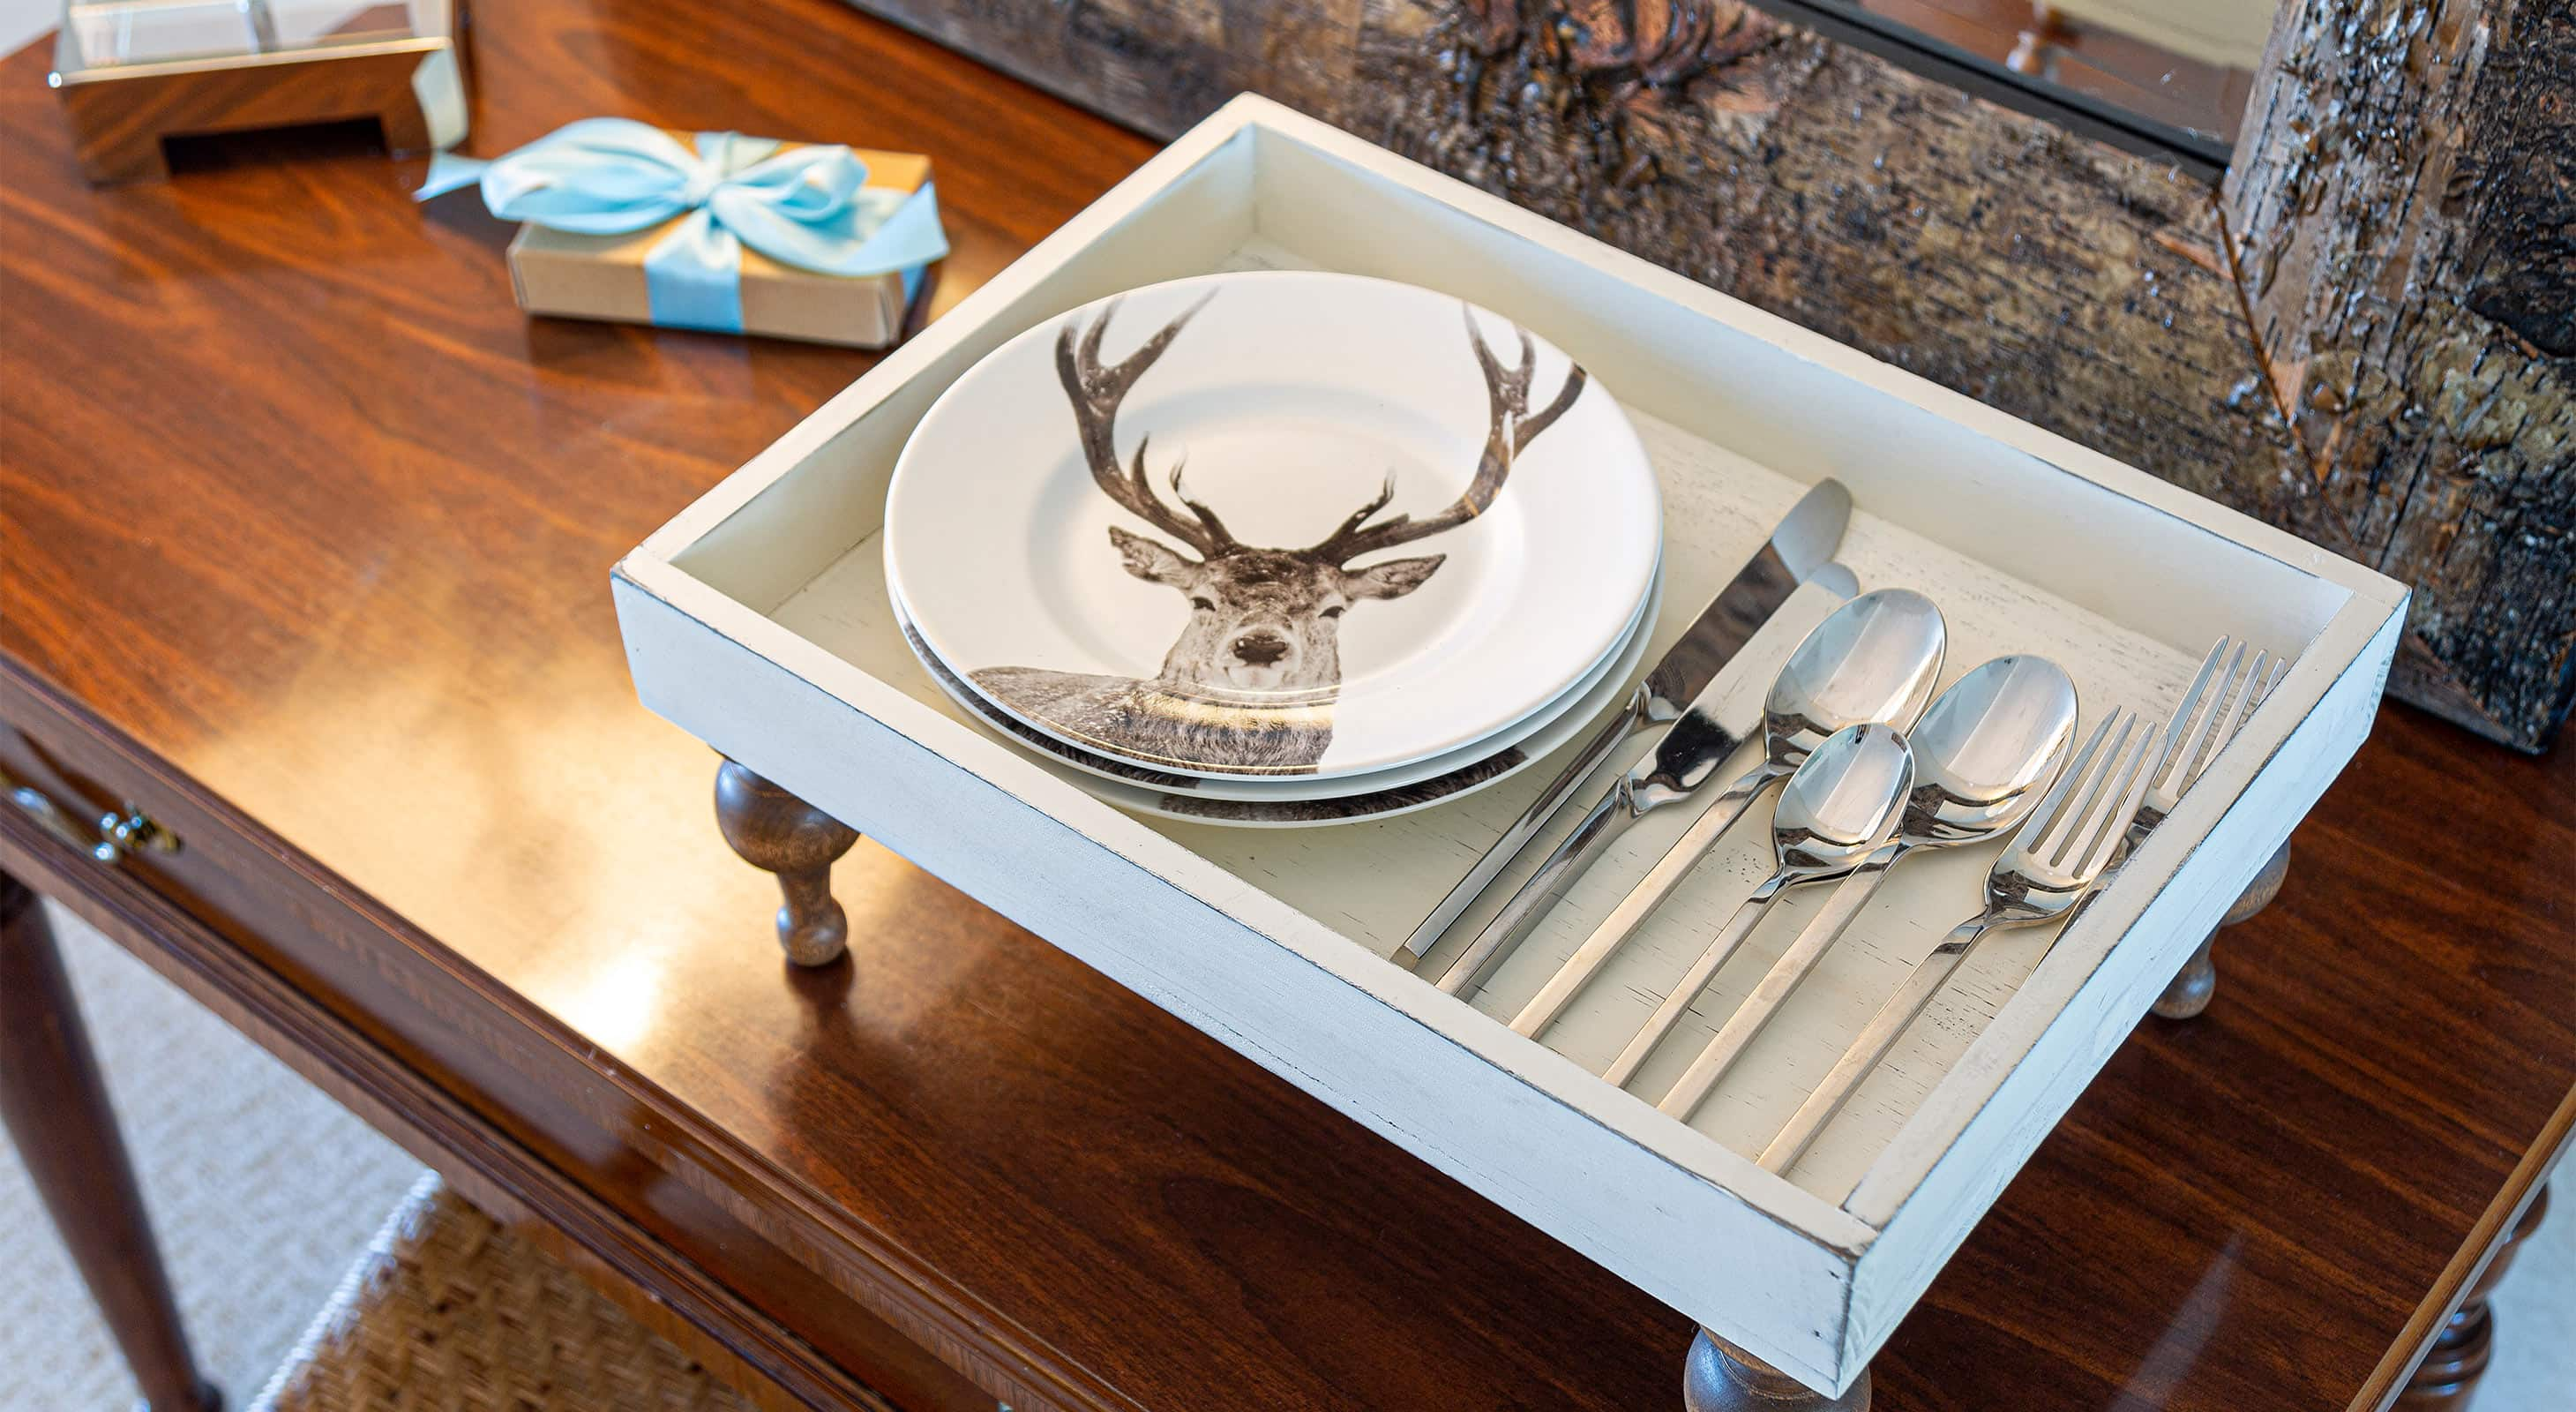 Dinner plates featuring a deer graphic with utensils